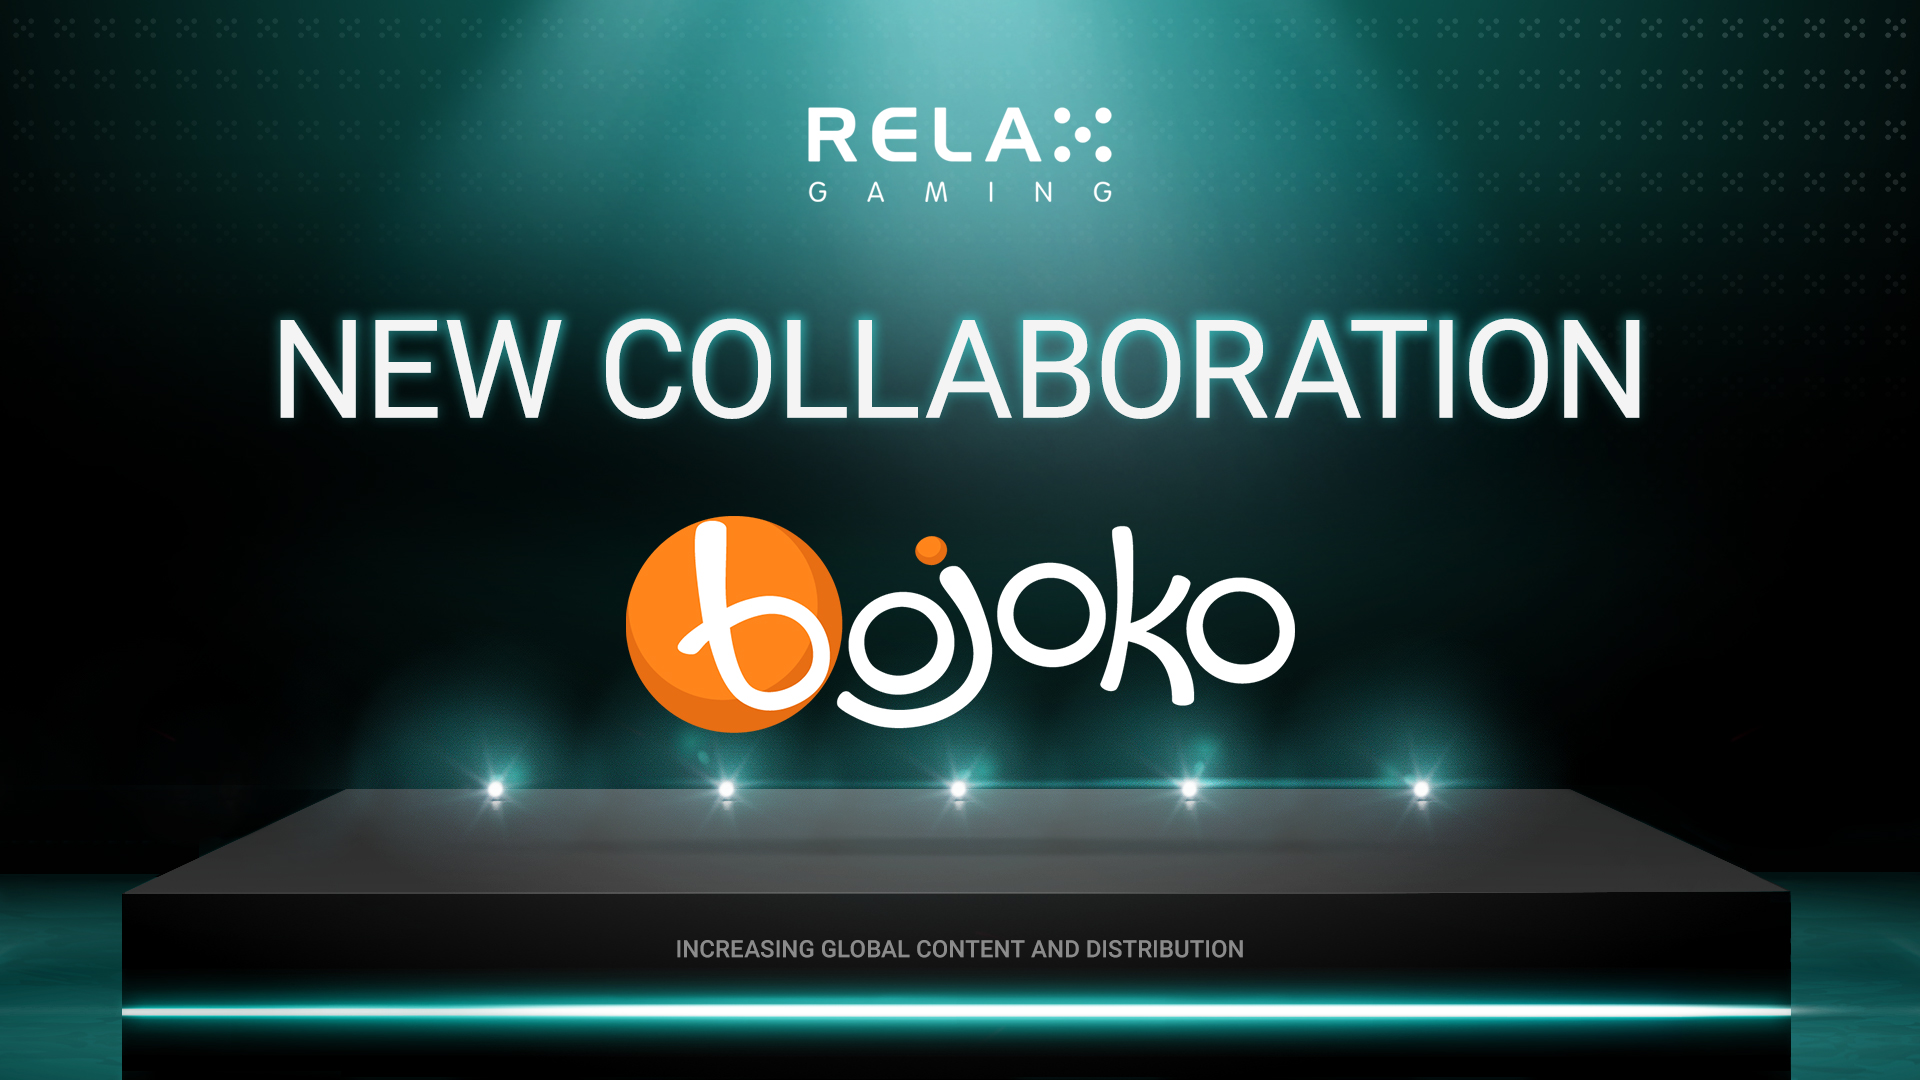 Relax Gaming joins forces with lead generation site Bojoko